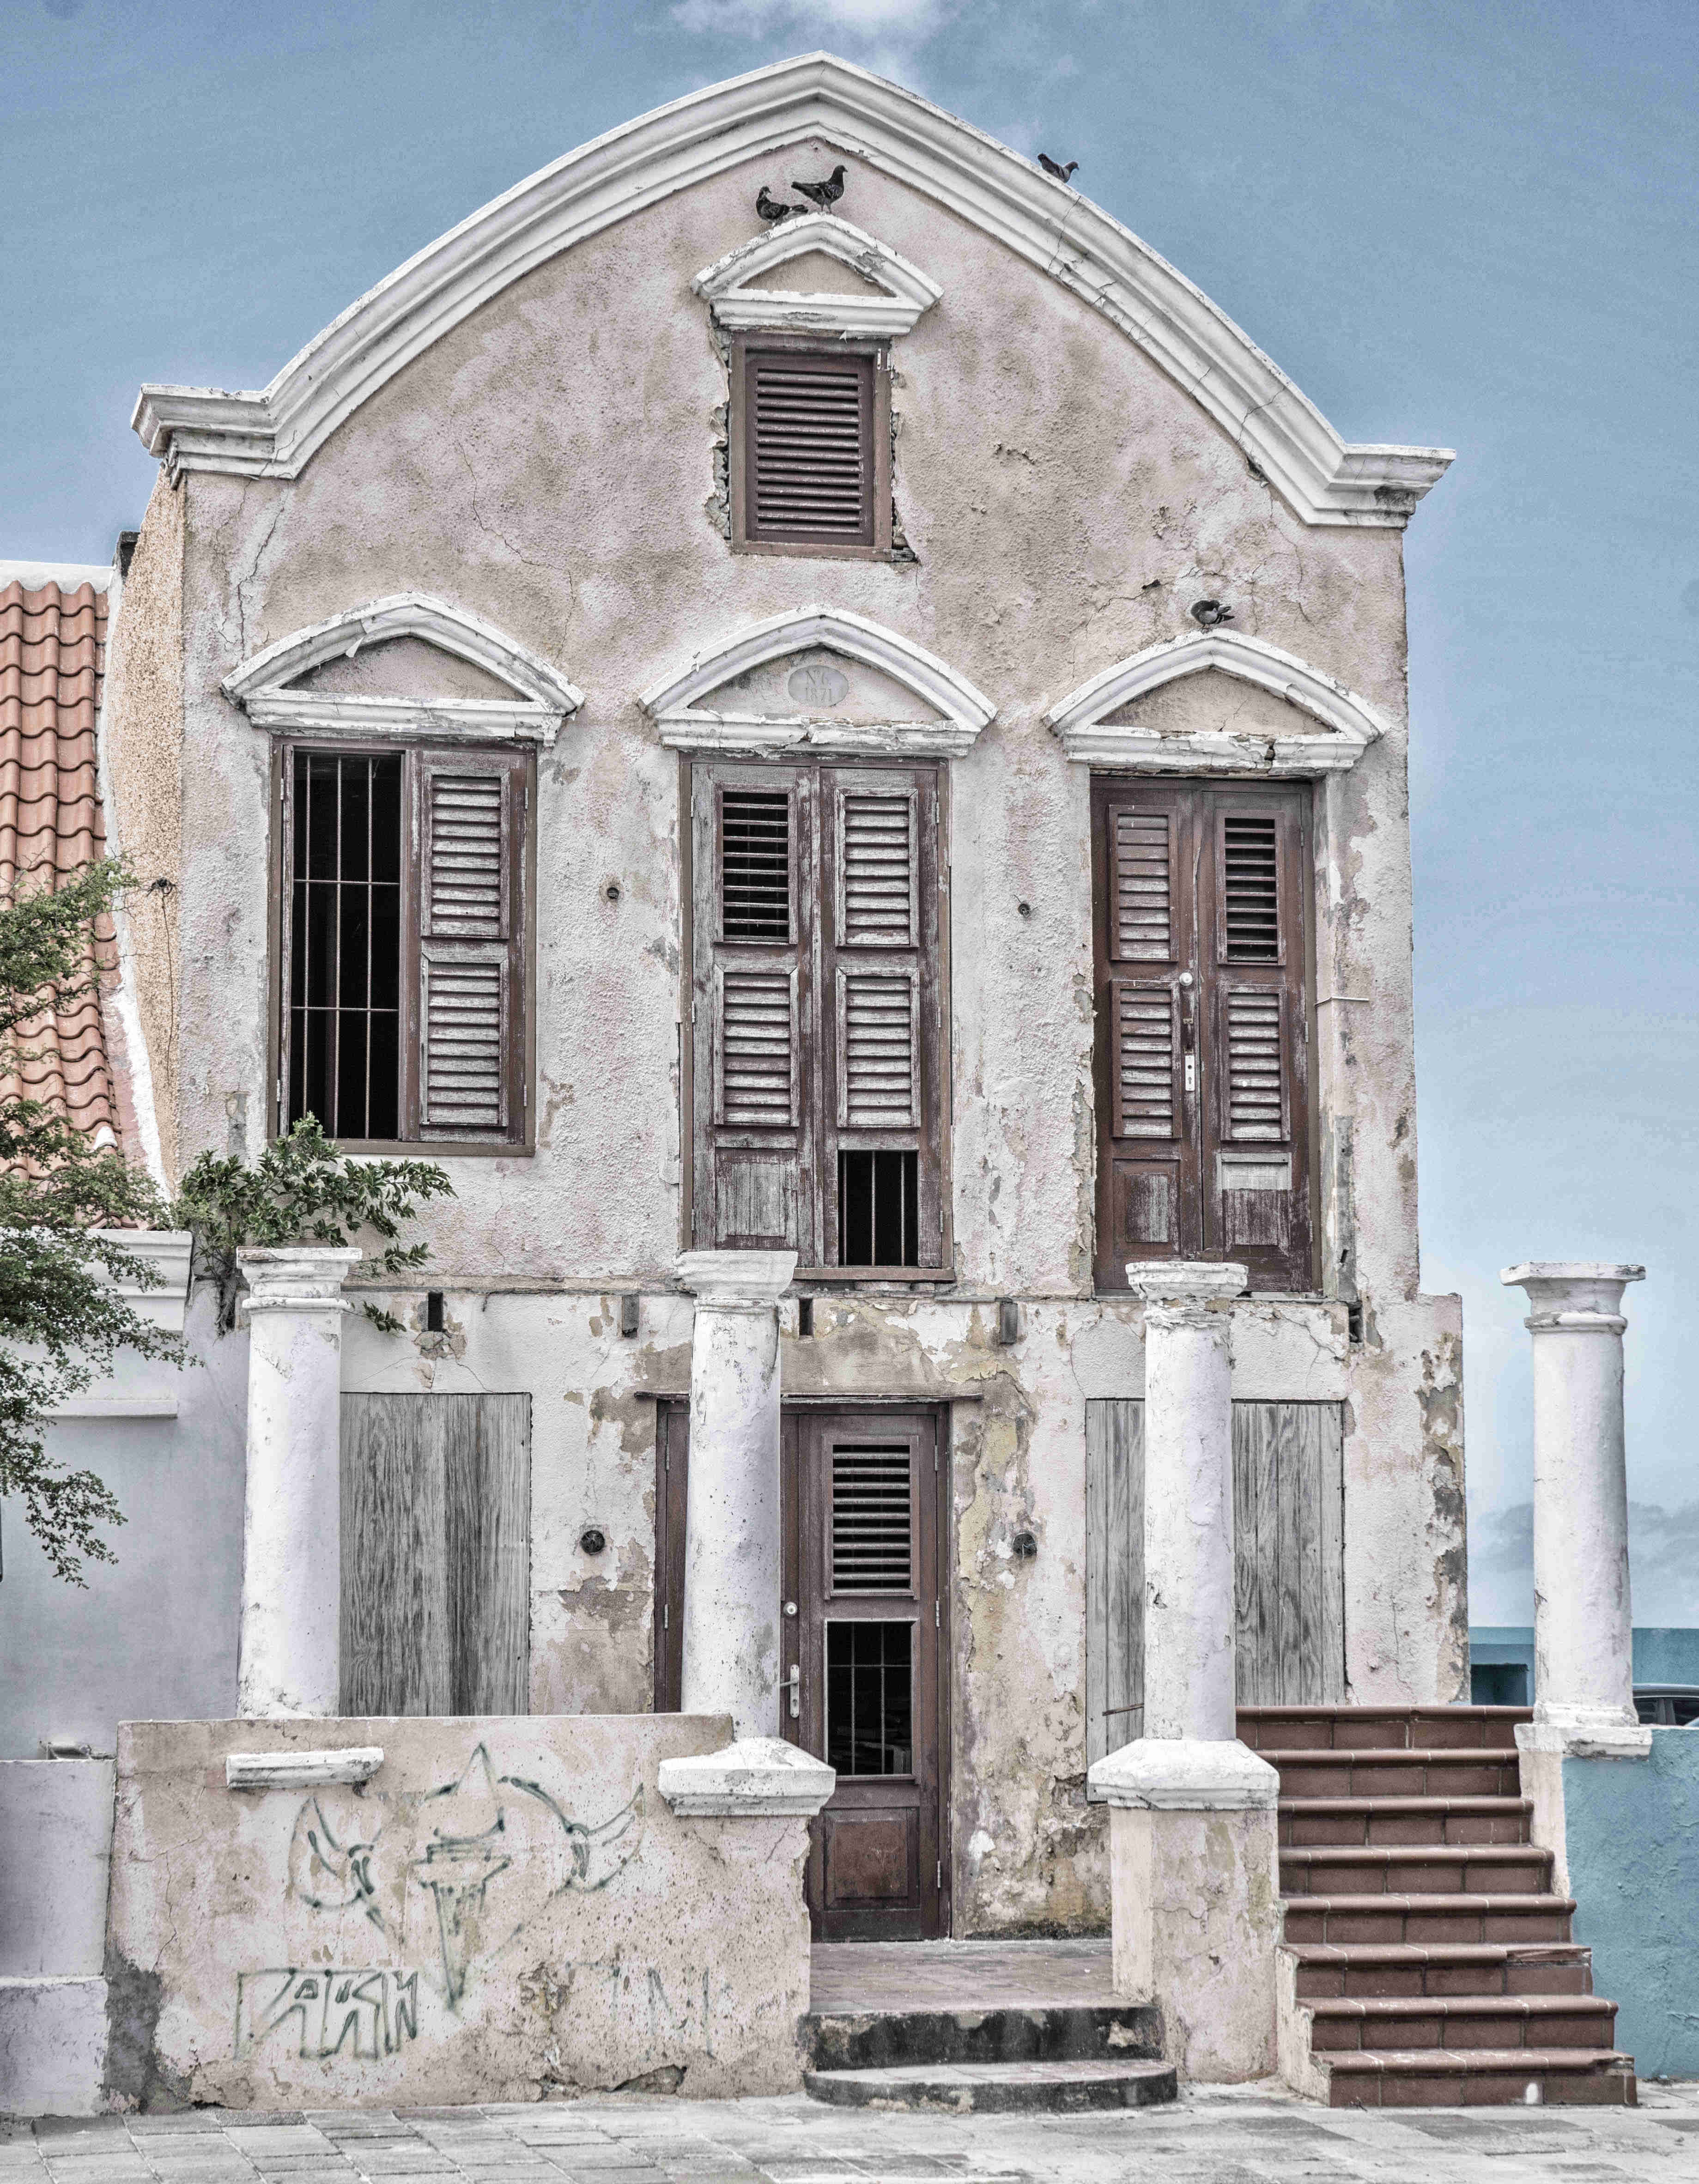 curacao-architektur-hollaendisch-karibisch-haus-lost-places